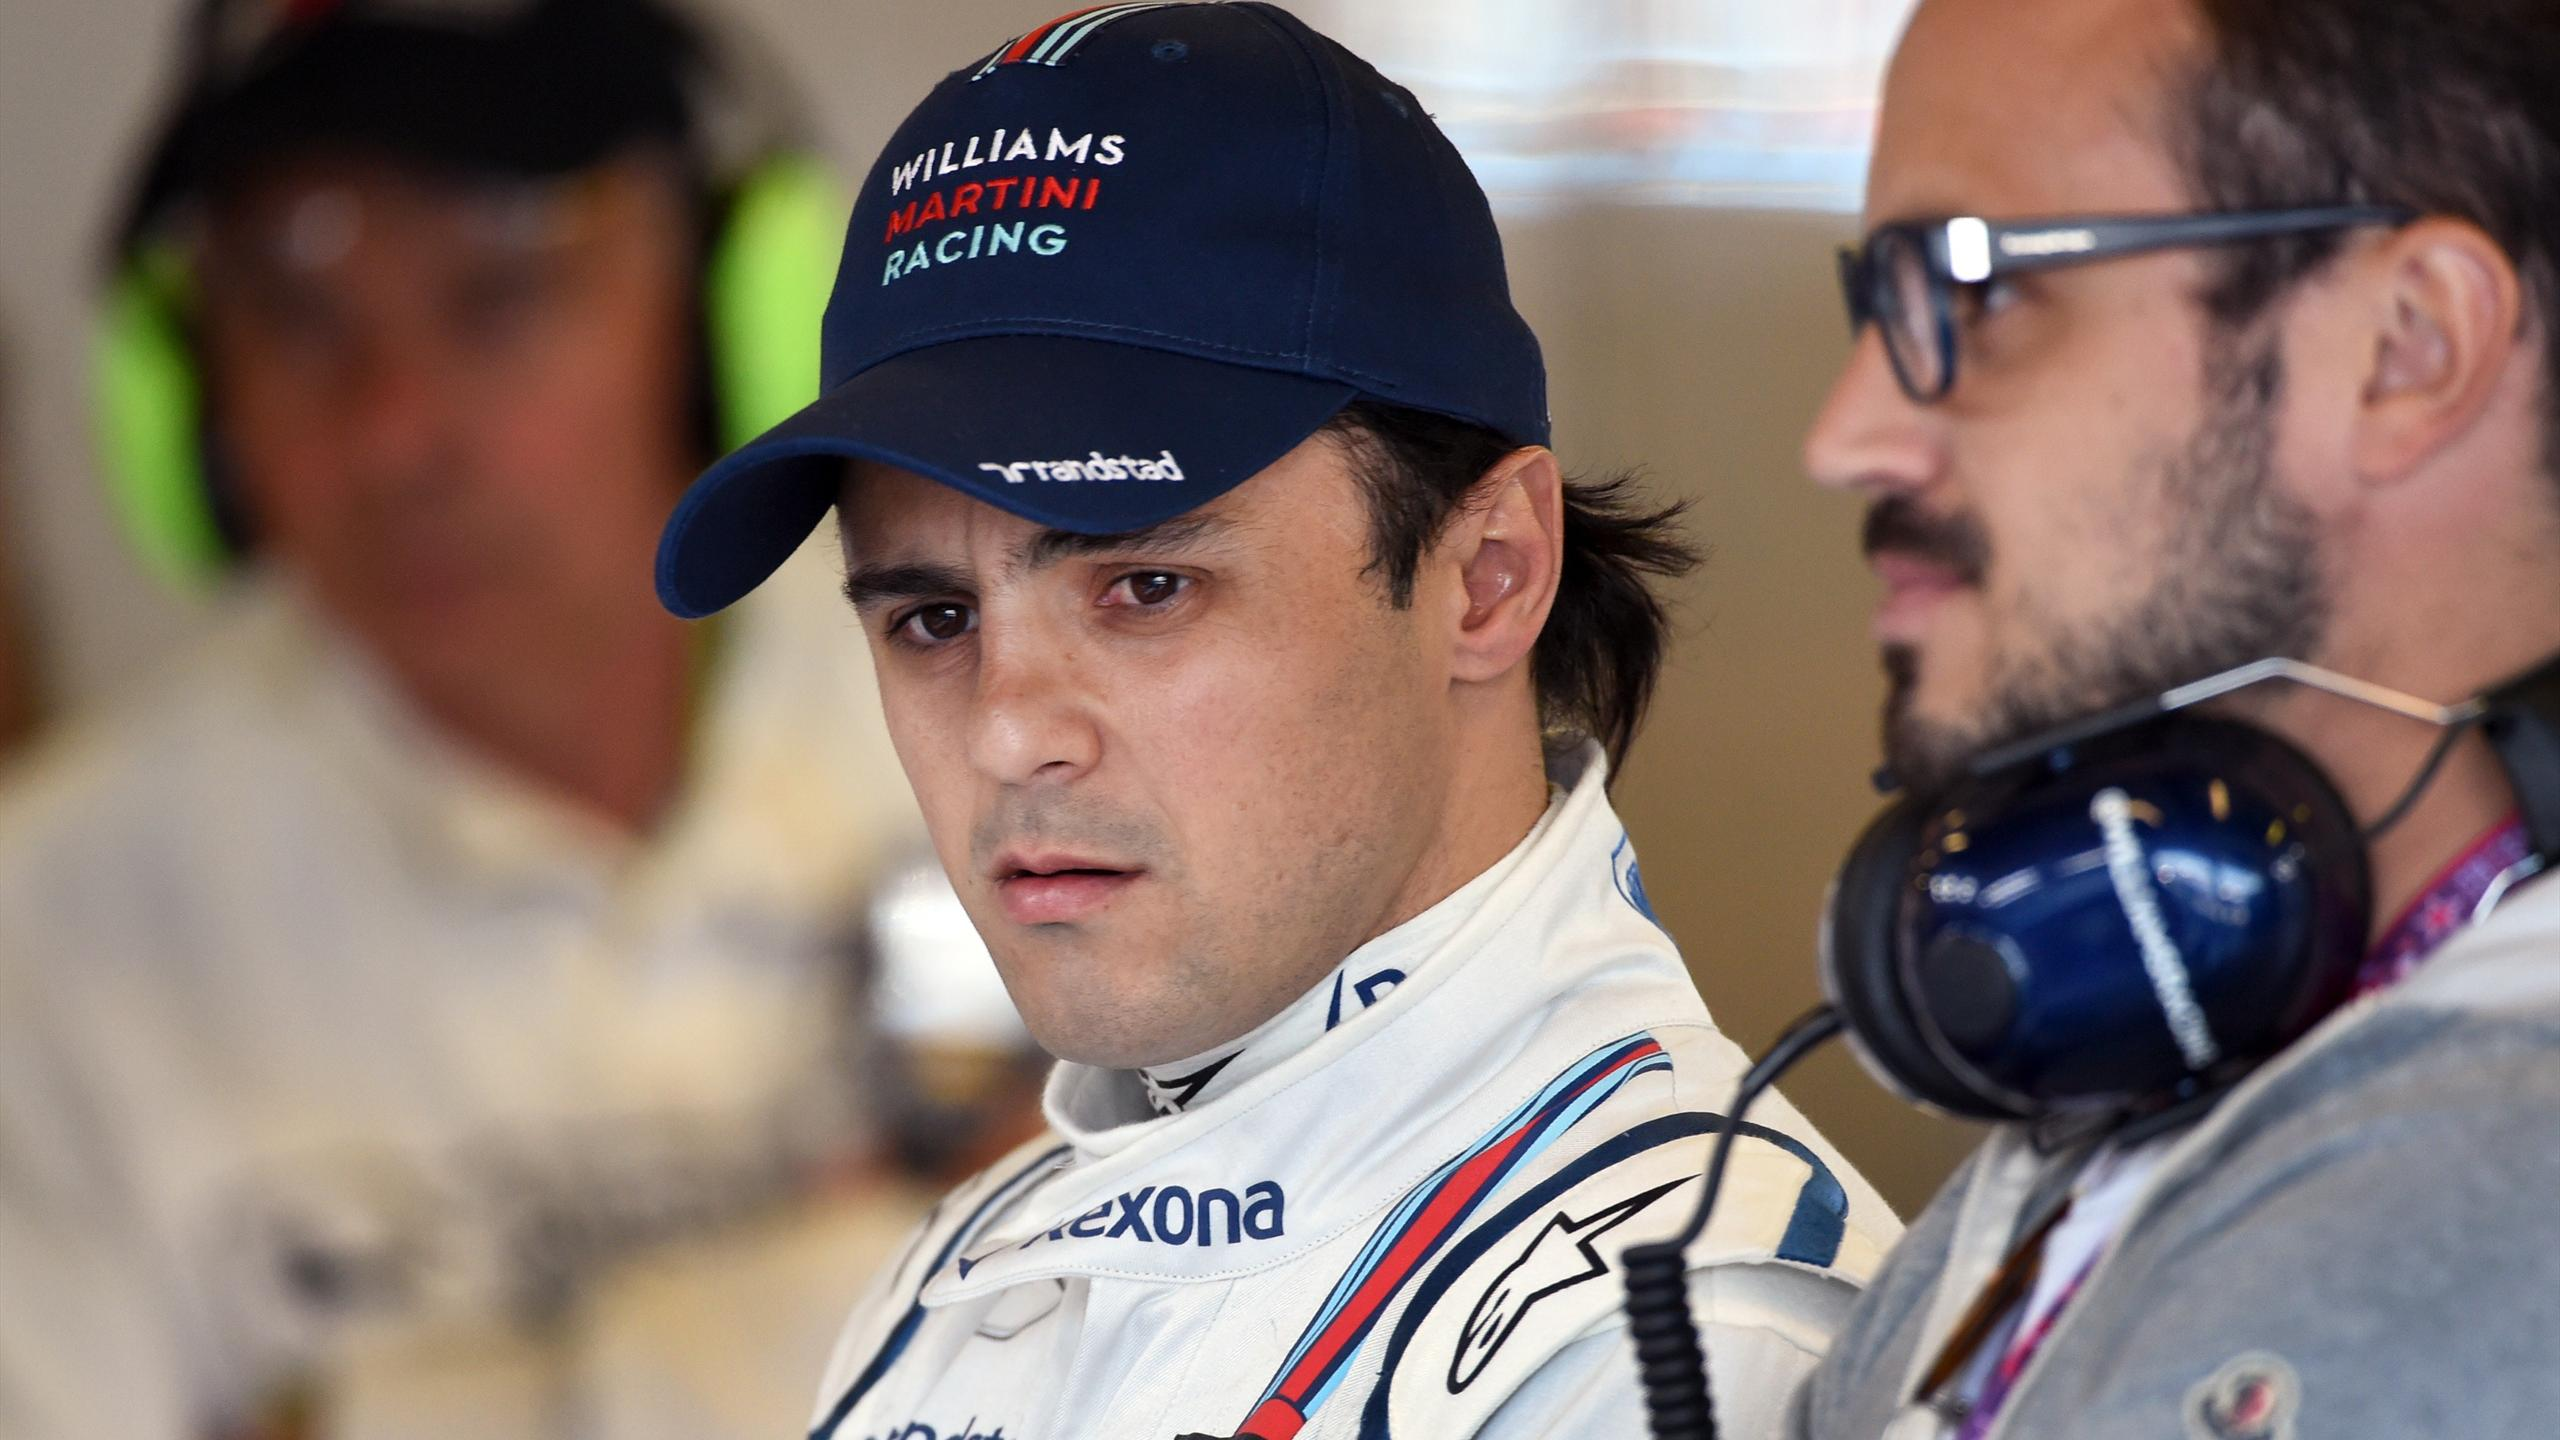 Felippe Massa en Williams